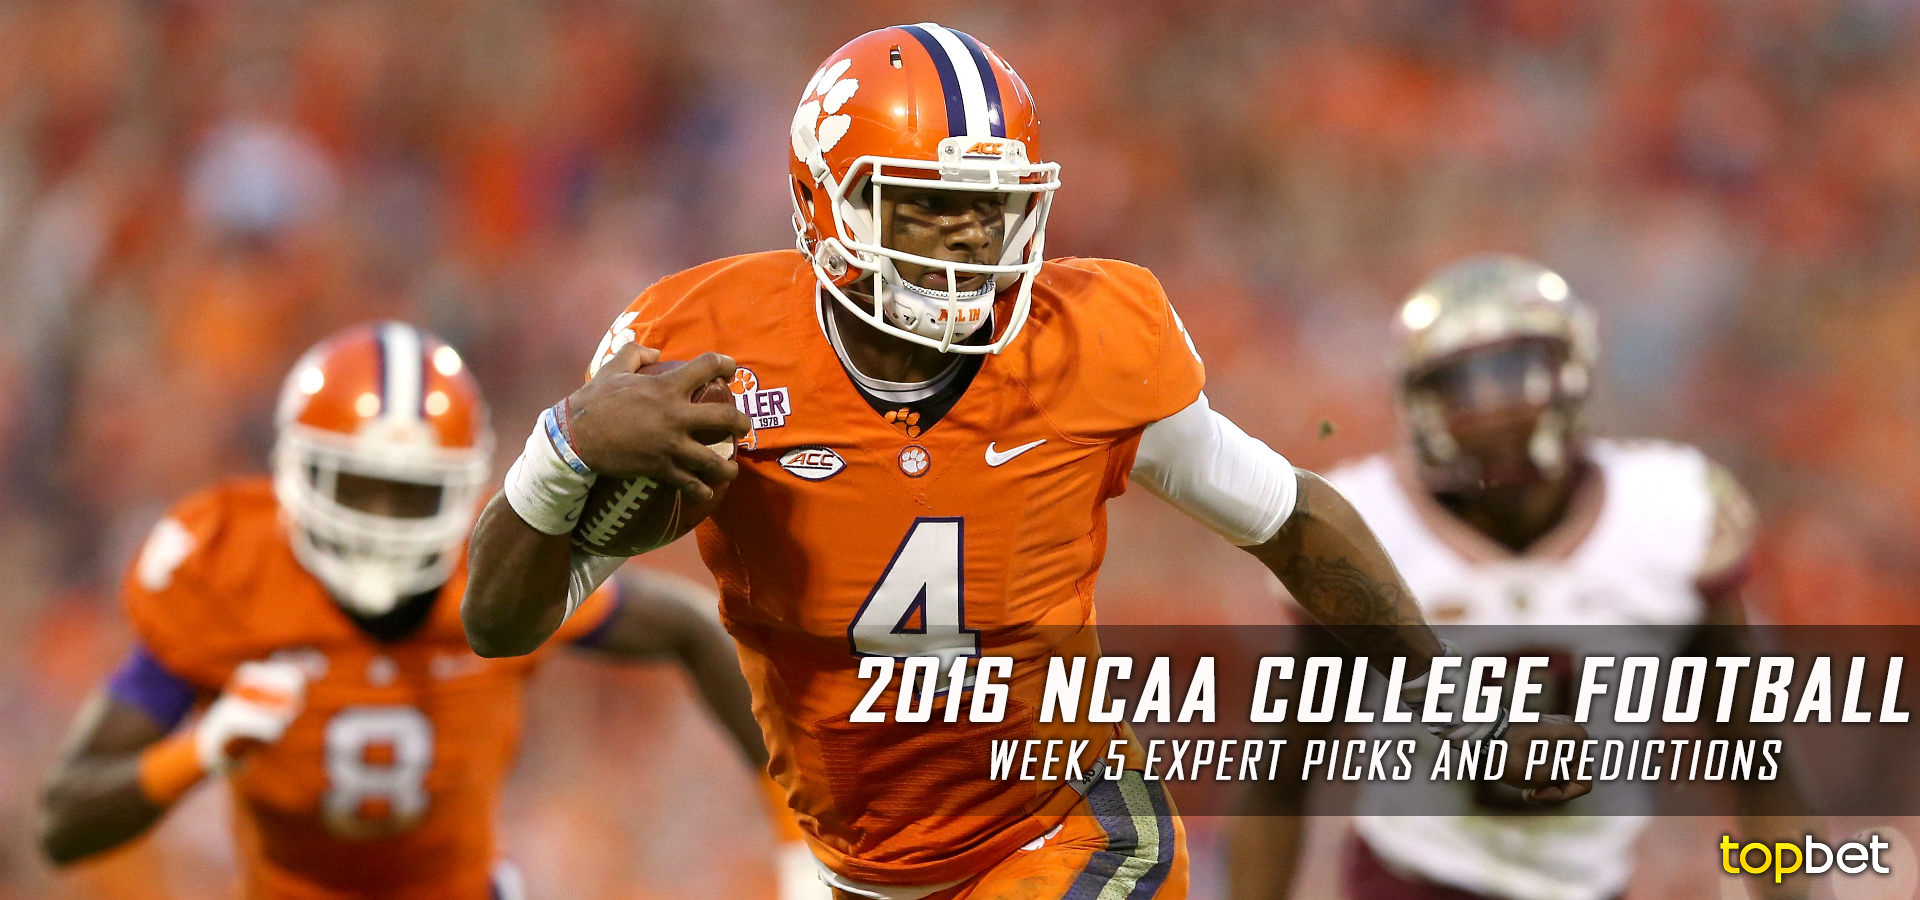 College Football Week 5 Expert Picks and Predictions 2016